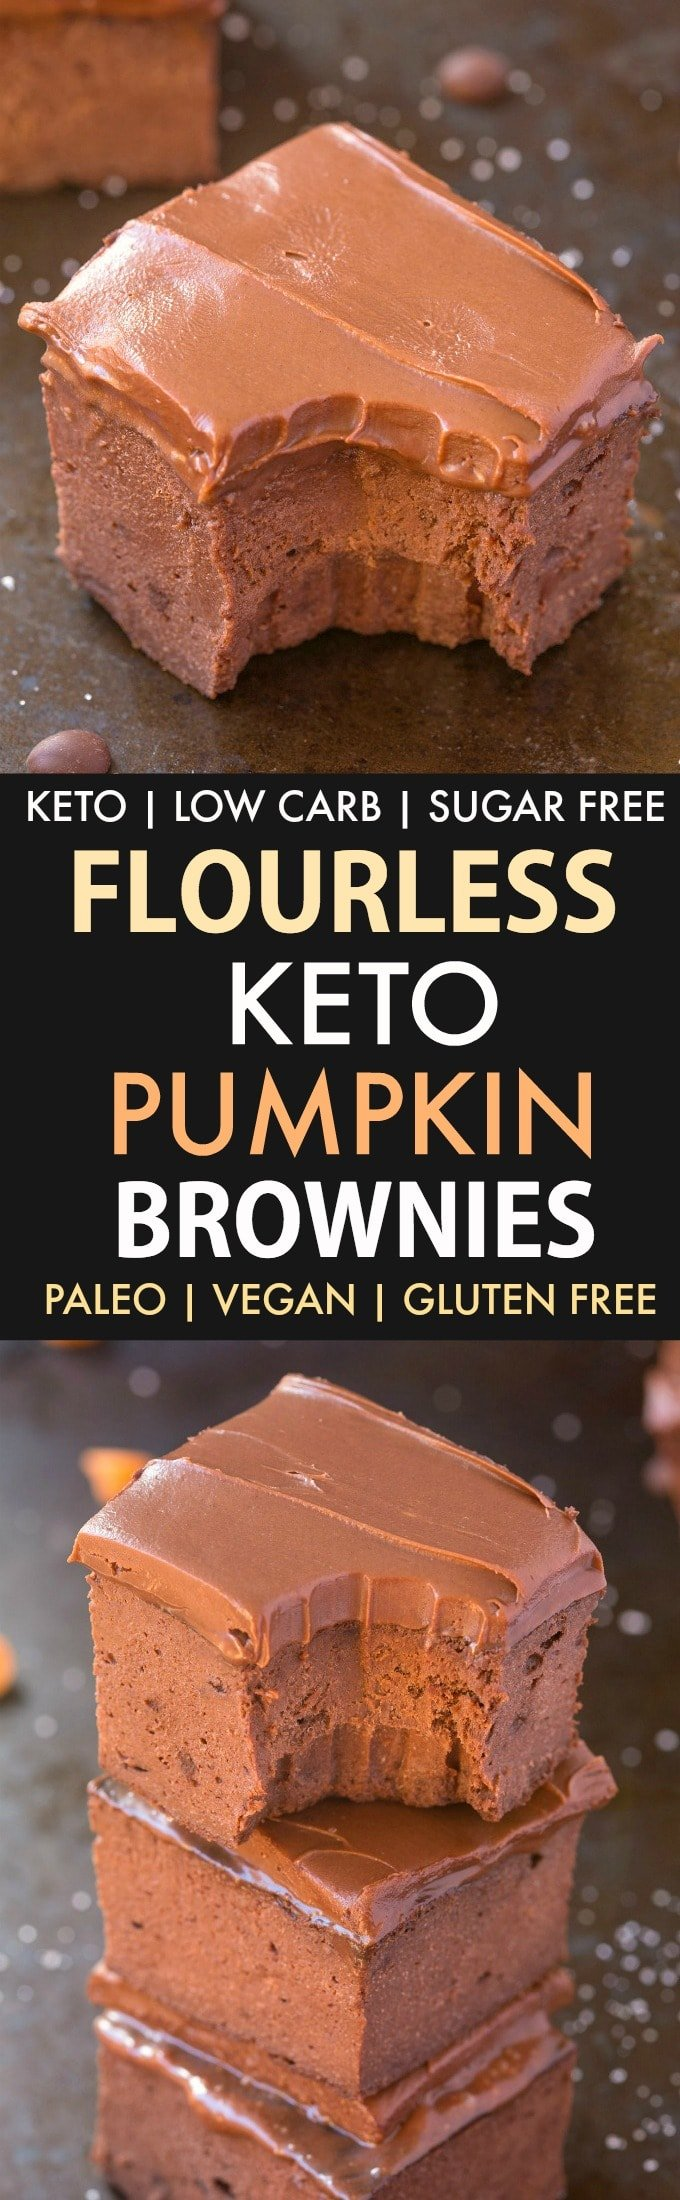 3-Ingredient Flourless Pumpkin Brownies (Low Carb, Keto, Vegan, Paleo, Sugar Free)- Make these quick and easy healthy flourless pumpkin brownies which need just 3 ingredients and take 15 minutes! Low carb, sugar-free and the perfect healthy chocolate fix! #ketodessert #pumpkinbrownies #pumpkinrecipes #sugarfree | Recipe on thebigmansworld.com